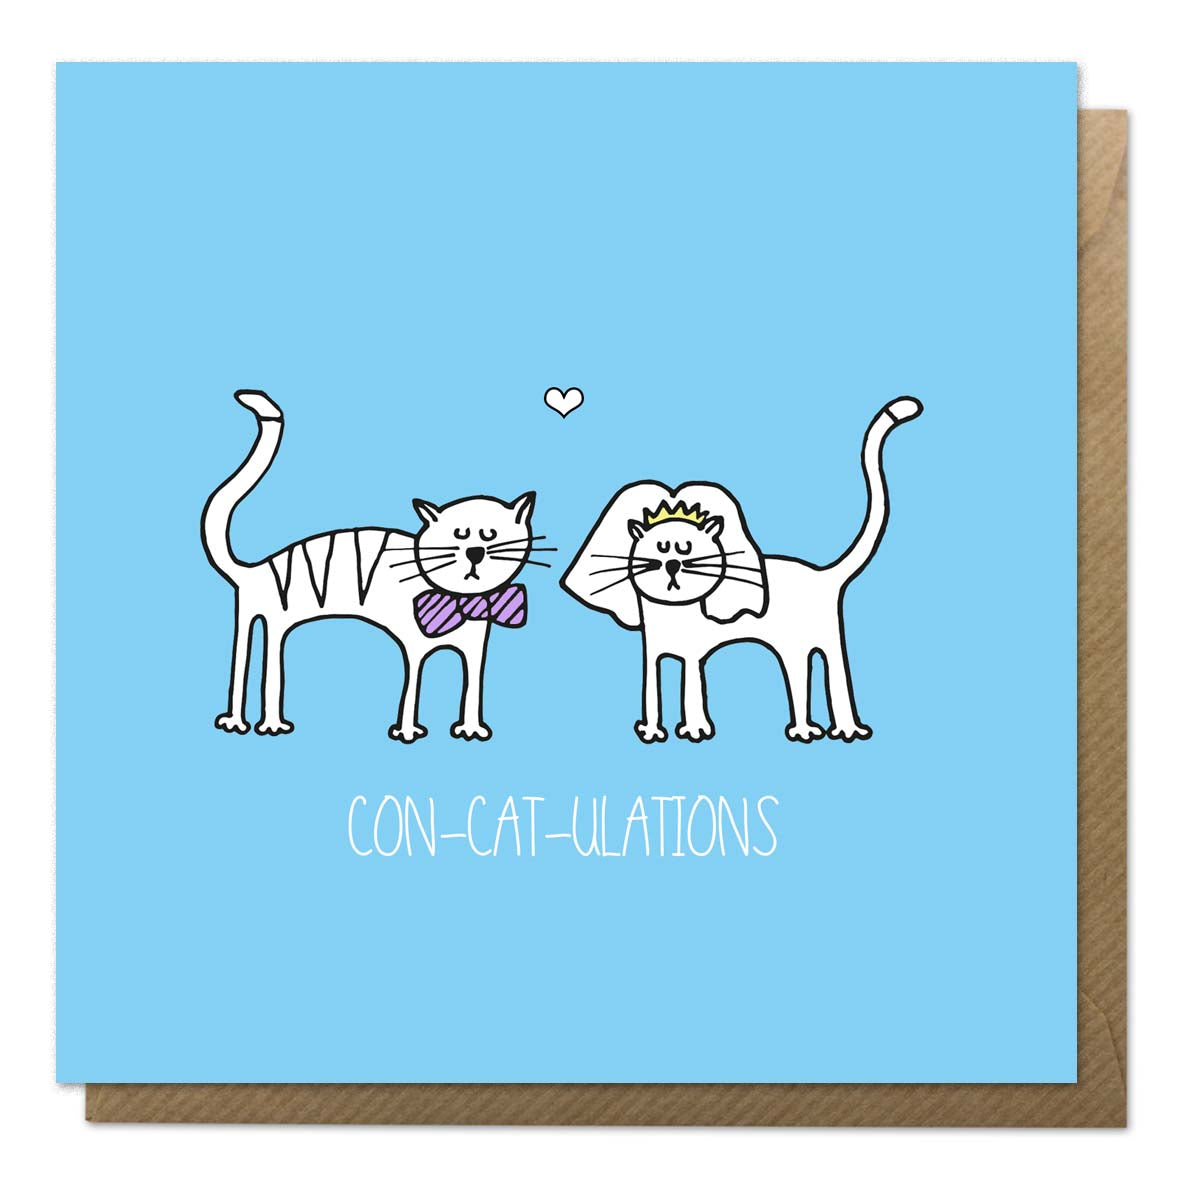 Blue wedding card with an illustration of cats getting married